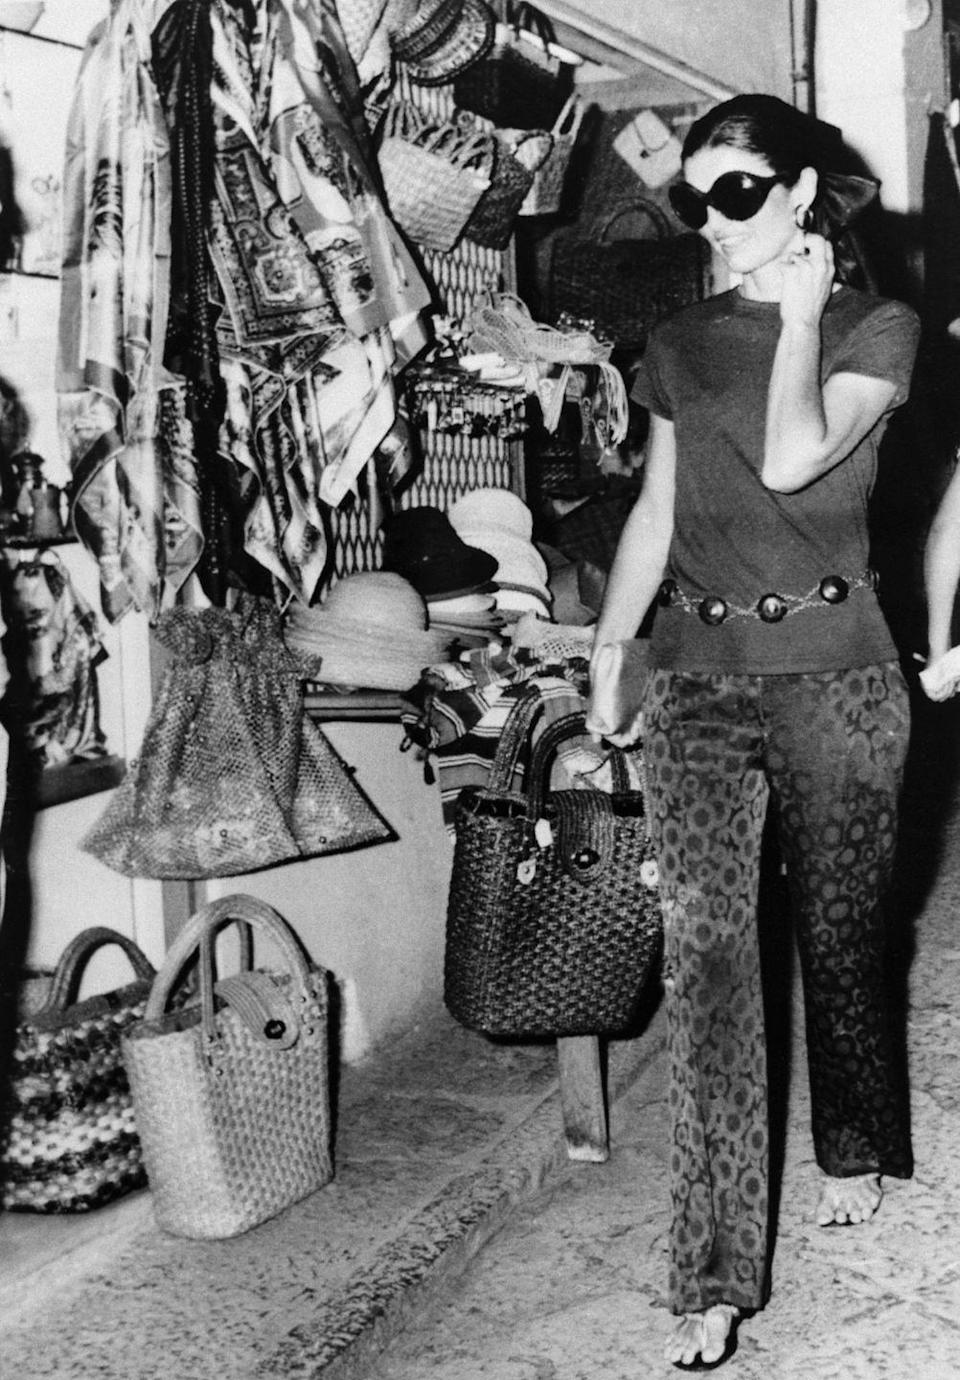 <p>Jackie, while shopping on holiday in southern Italy, wears patterned pants, chic leather sandals, and a draped belt. Oversize sunglasses, hoop earrings, and sandals complete the casual look.<br></p>